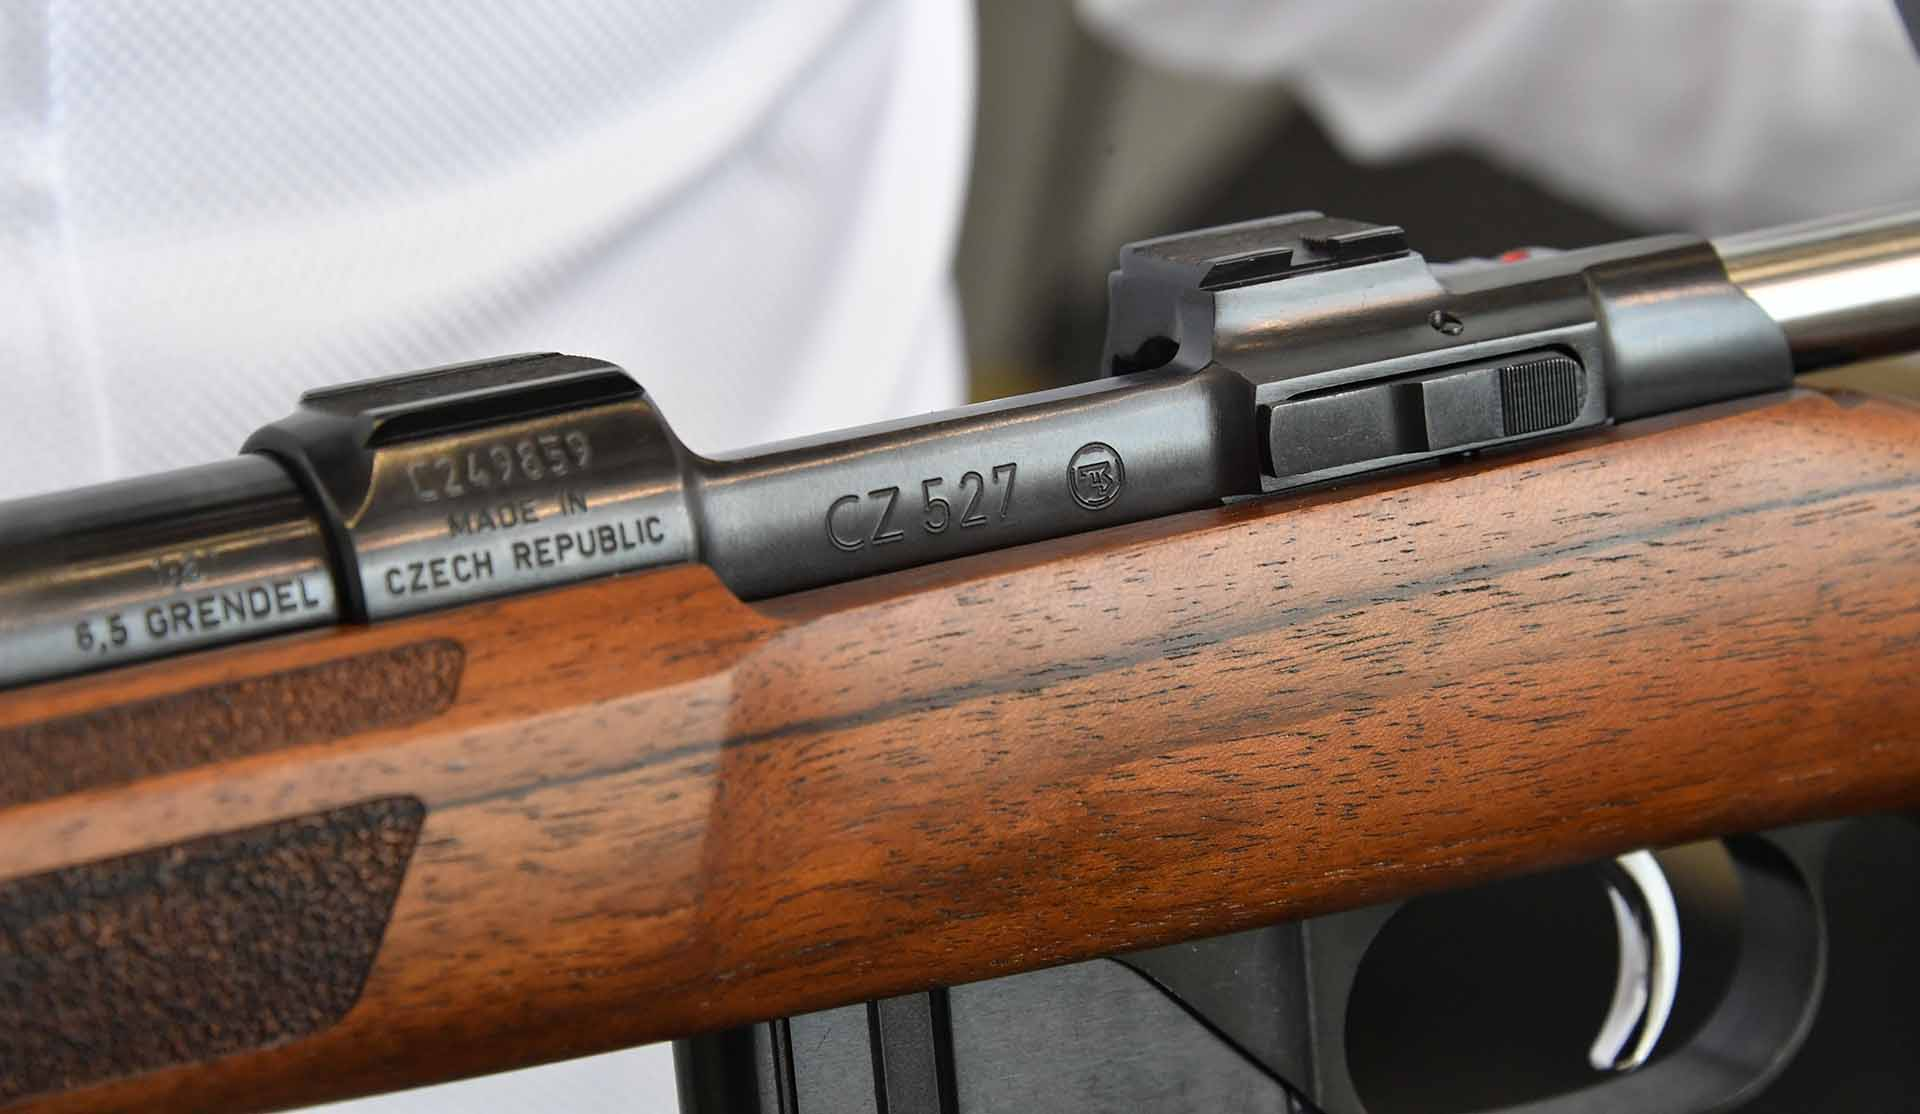 CZ 527 Varmint MTR bolt action rifle